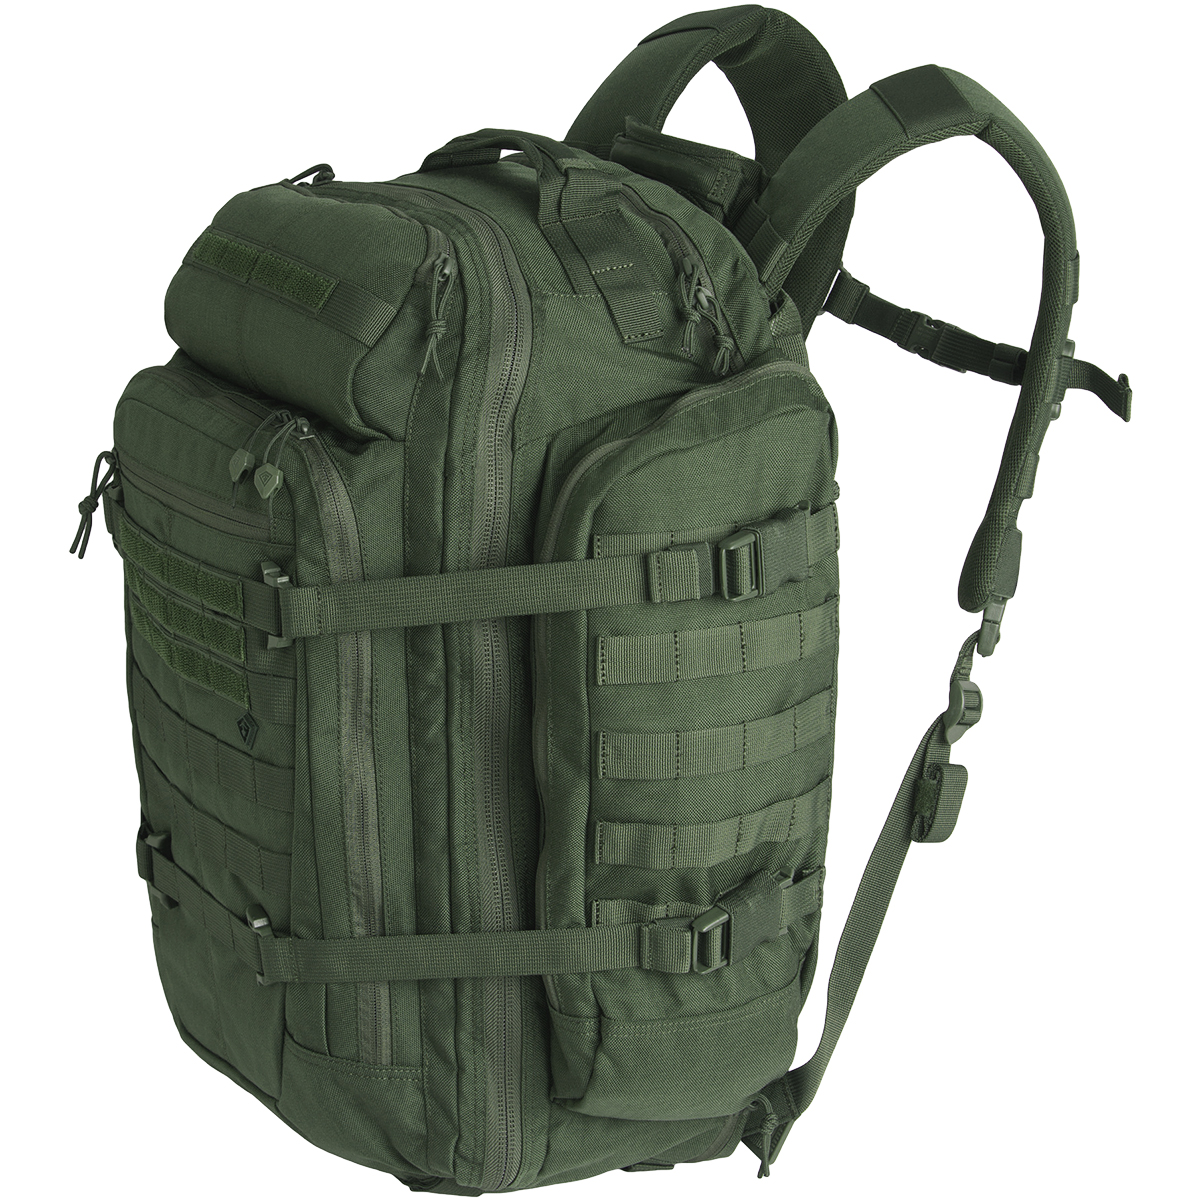 Details about First Tactical Specialist 3-Day Backpack Hunting Hiking Army  MOLLE Pack OD Green 21fe6a8ebaa